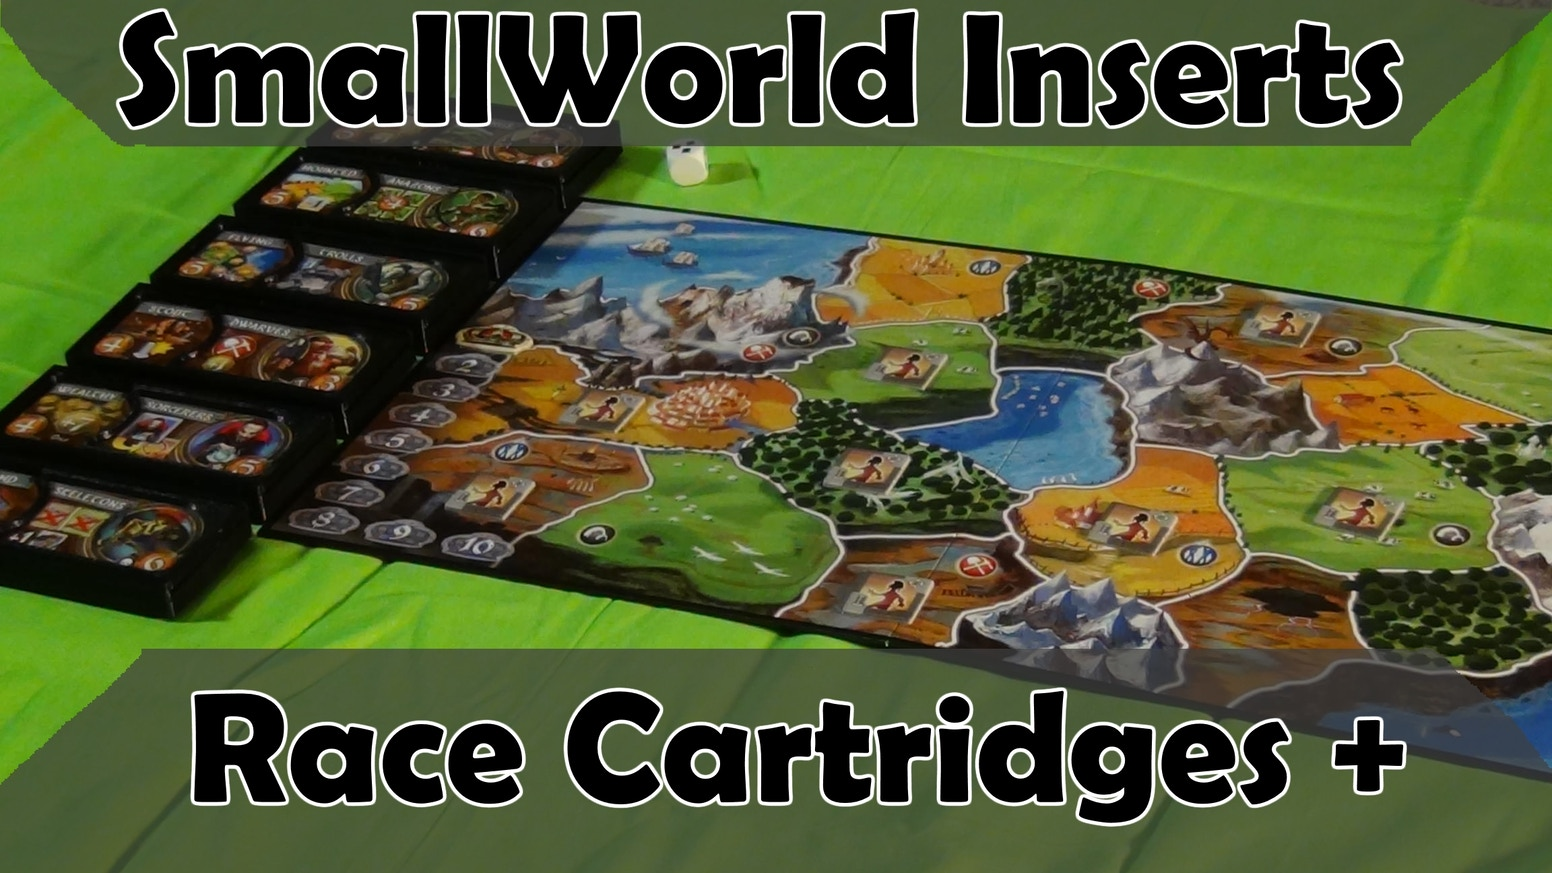 SmallWorld board game inserts unlike any other. Individual cartridges for each race holding the race banner and ALL the tokens for it. Missed the campaign? No worries, stay tuned for the link below leading to where you can purchase them!